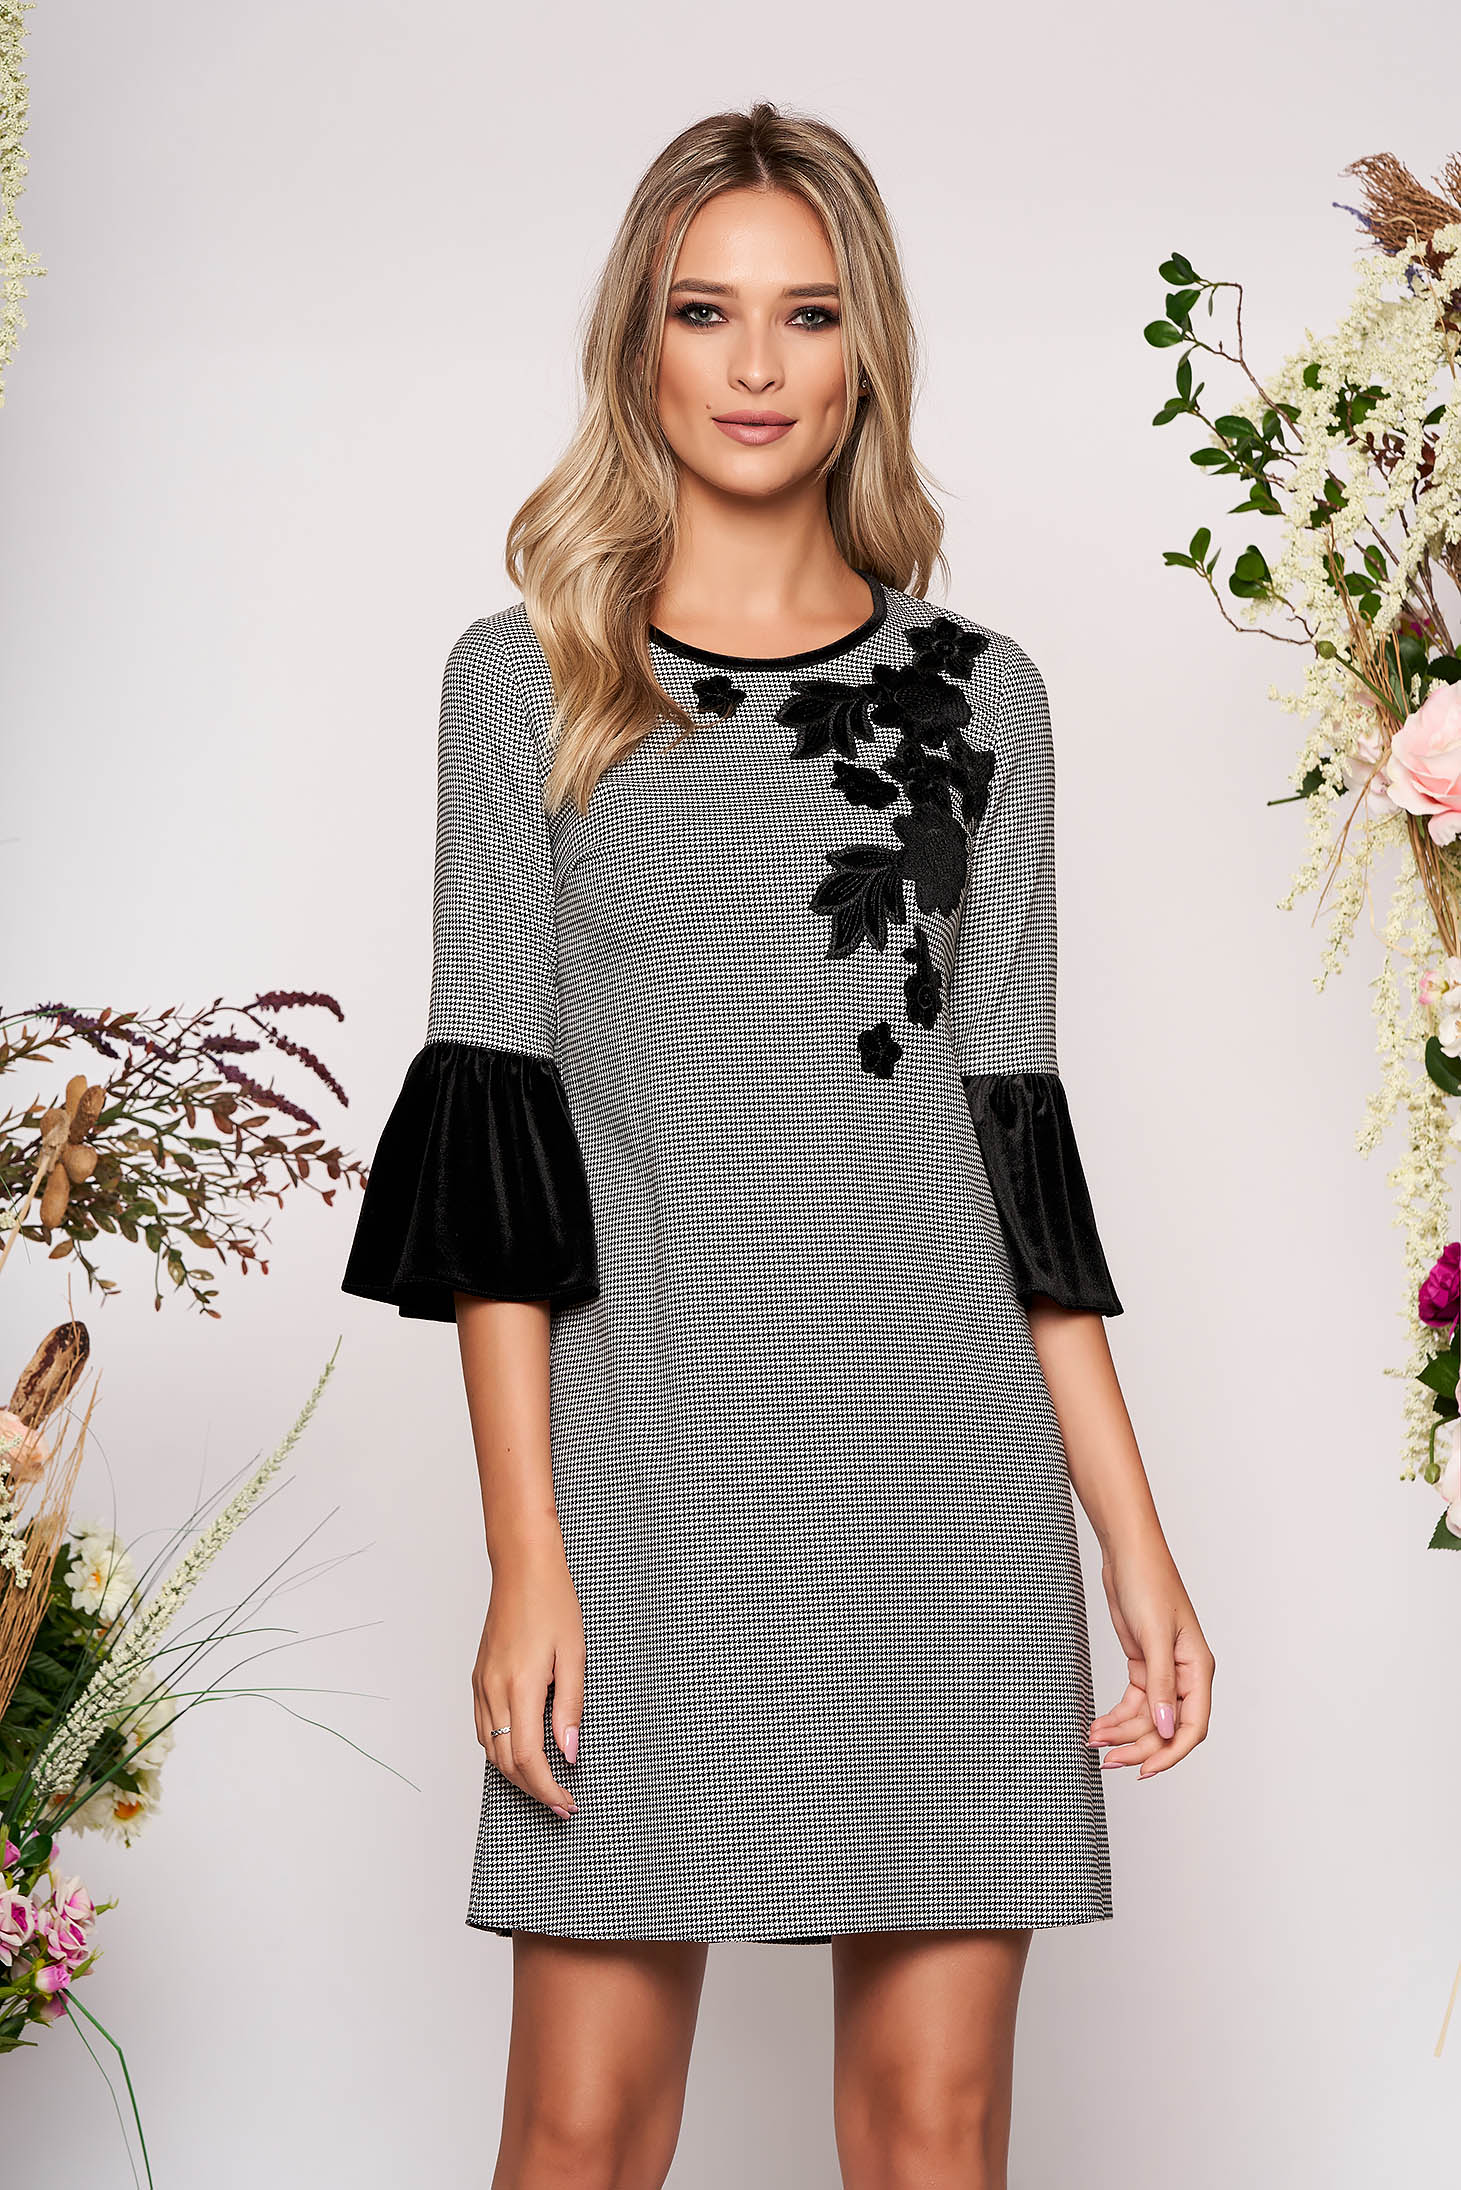 Elegant a-line black dress with bell sleeves with chequers and rounded cleavage